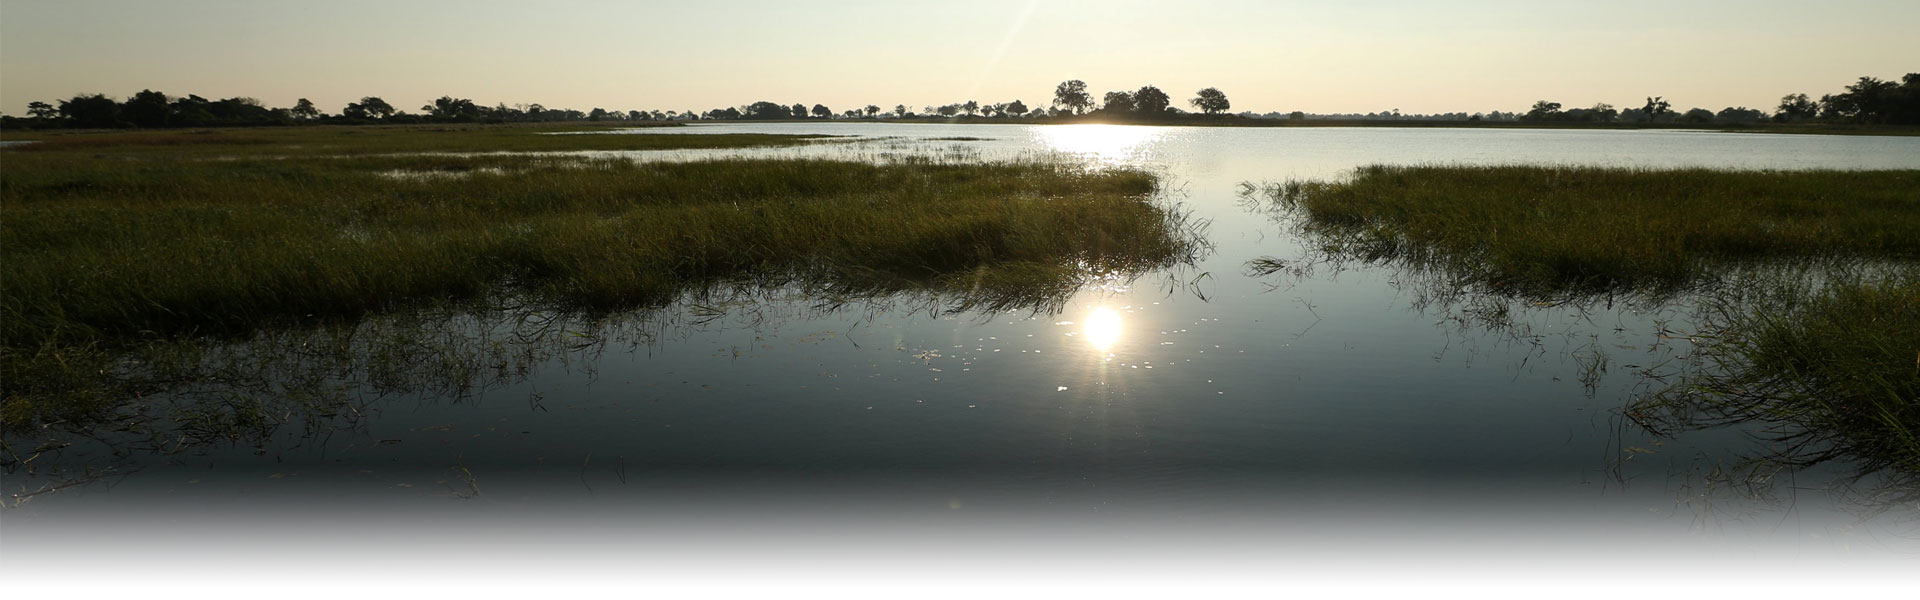 A beautiful picture of the Okavango Delta Eco Adventure tour